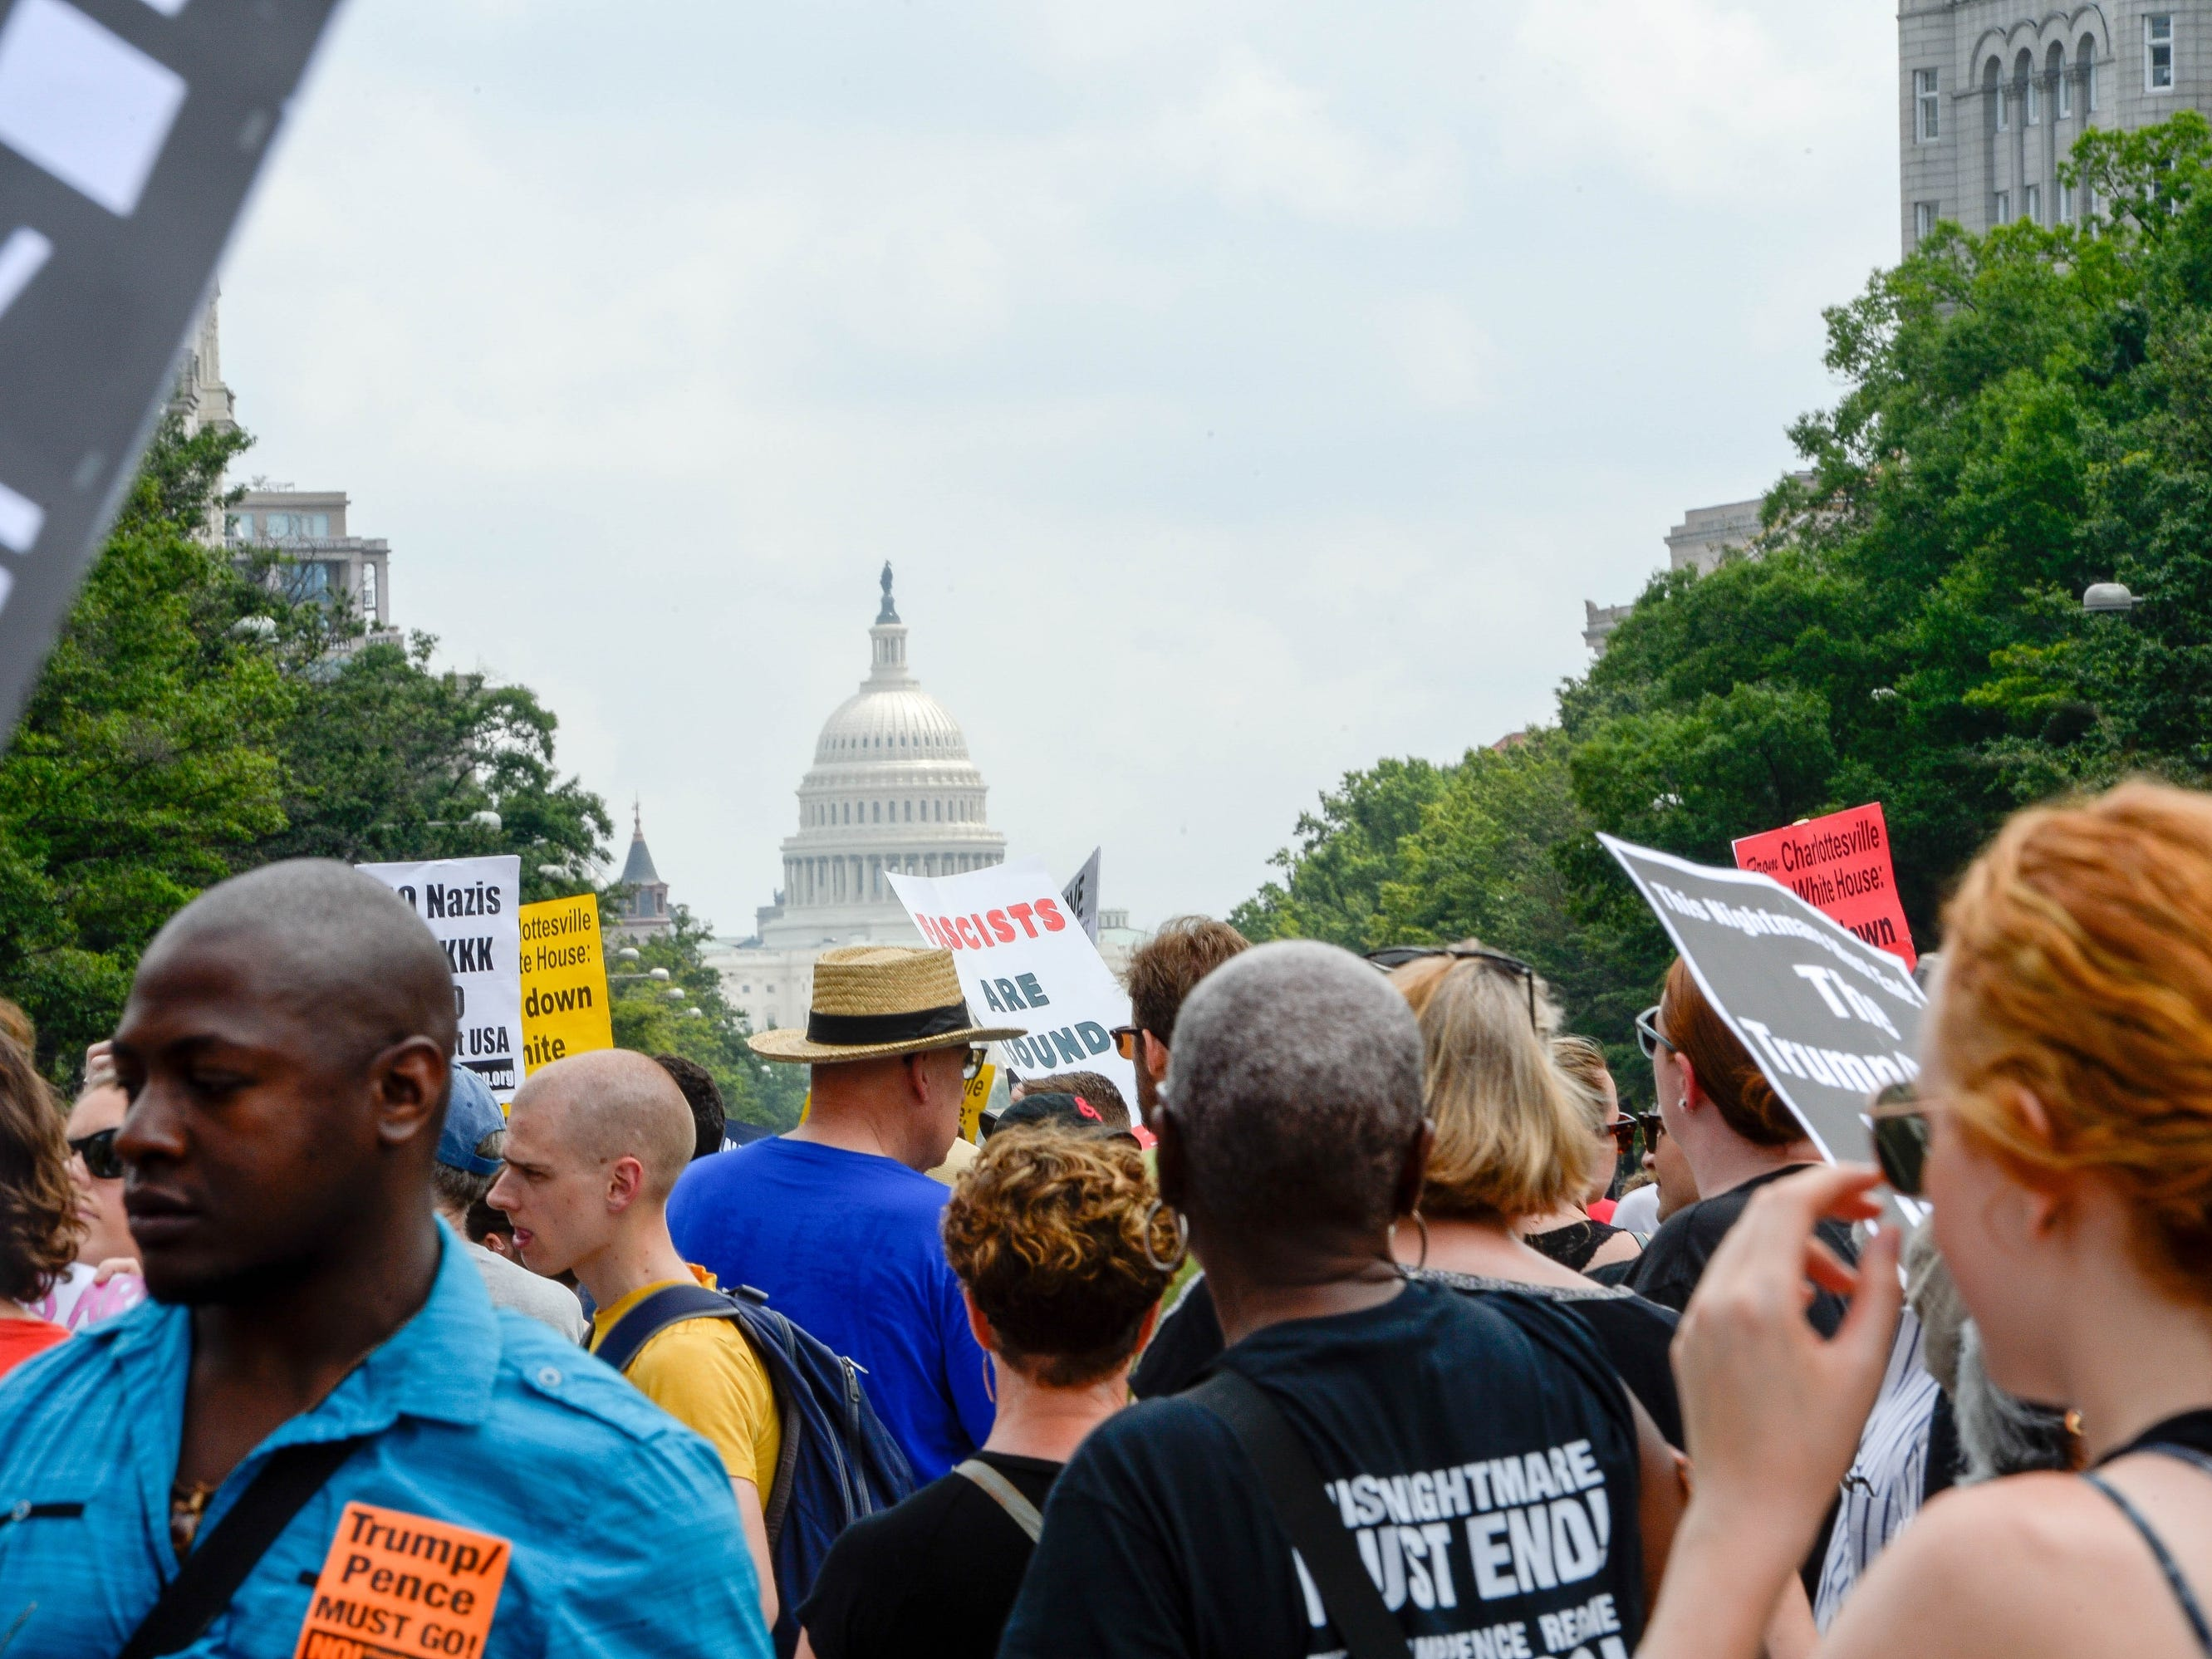 Participants gather at Freedom plaza during the Unite the Right rally on Aug. 12, 2018 in Washington. A year ago and 120 miles southwest of Washington, a Unite the Right rally in Charlottesville, Va, turned deadly. Heather Heyer, a 32-year-old legal assistant, was struck and killed when a white supremacist slammed his car into a counter-protest. And two Virginia state troopers died when their surveillance helicopter crashed near the protests.